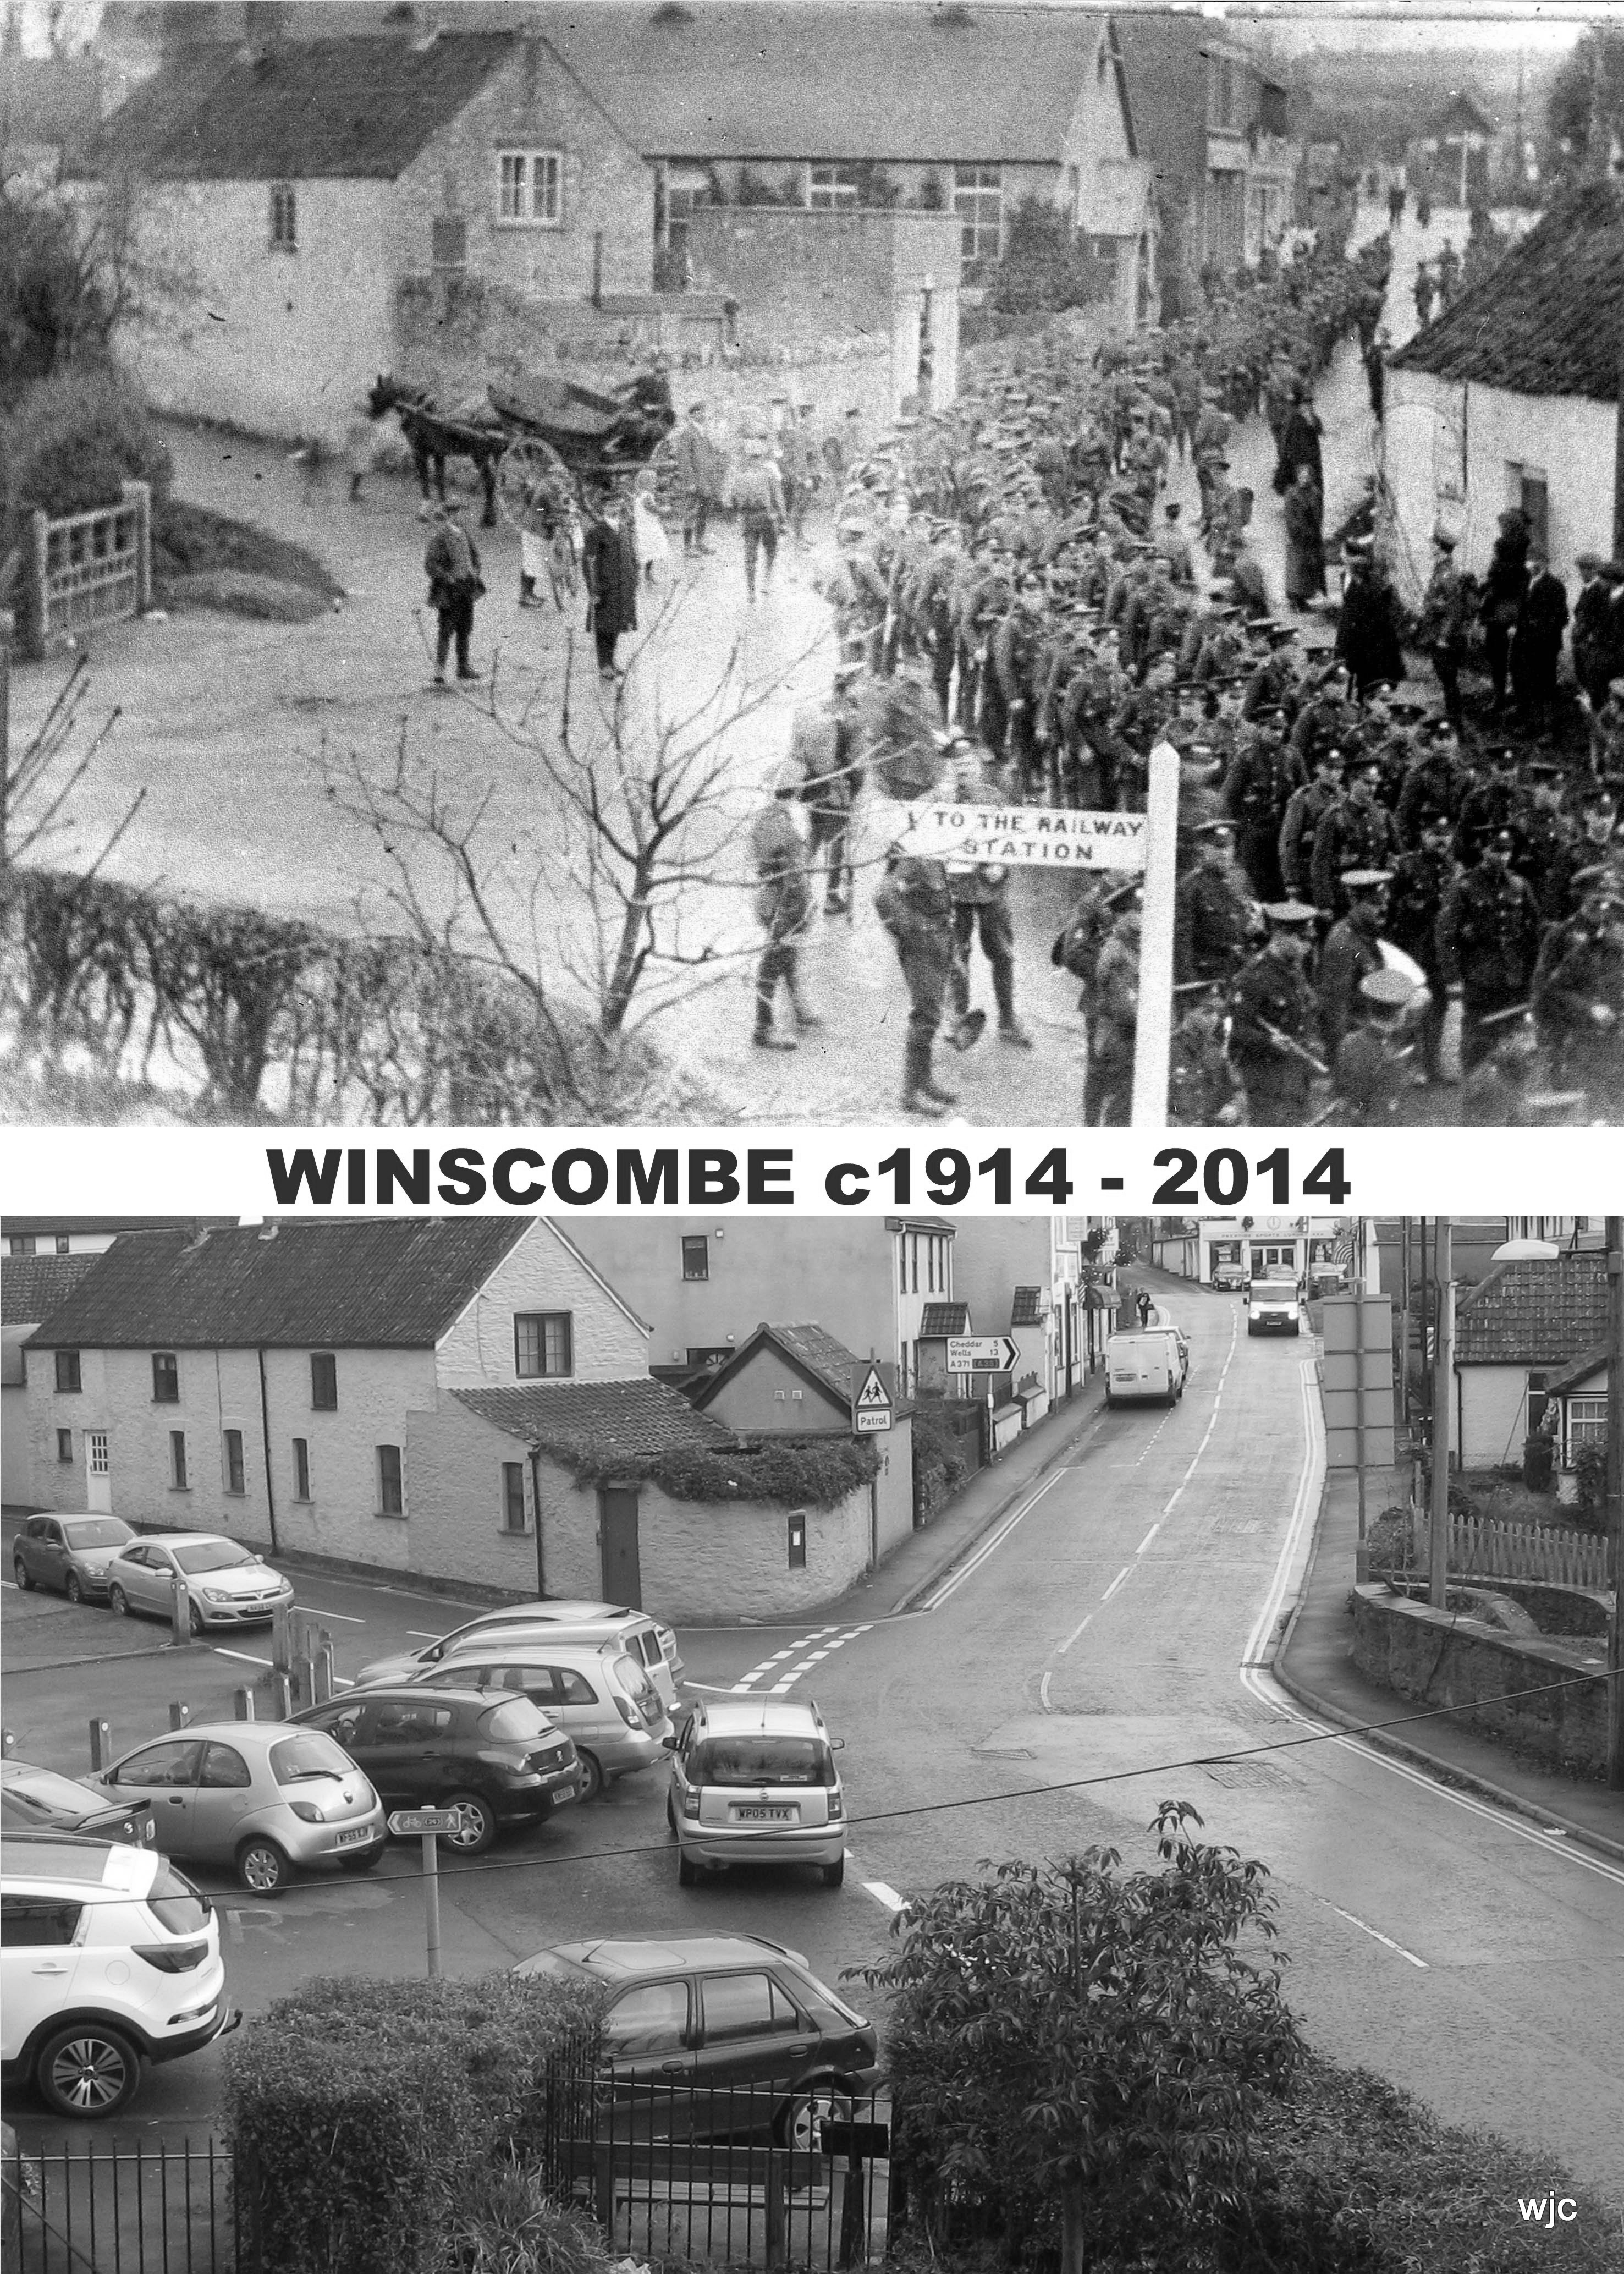 Station rd. Winscombe